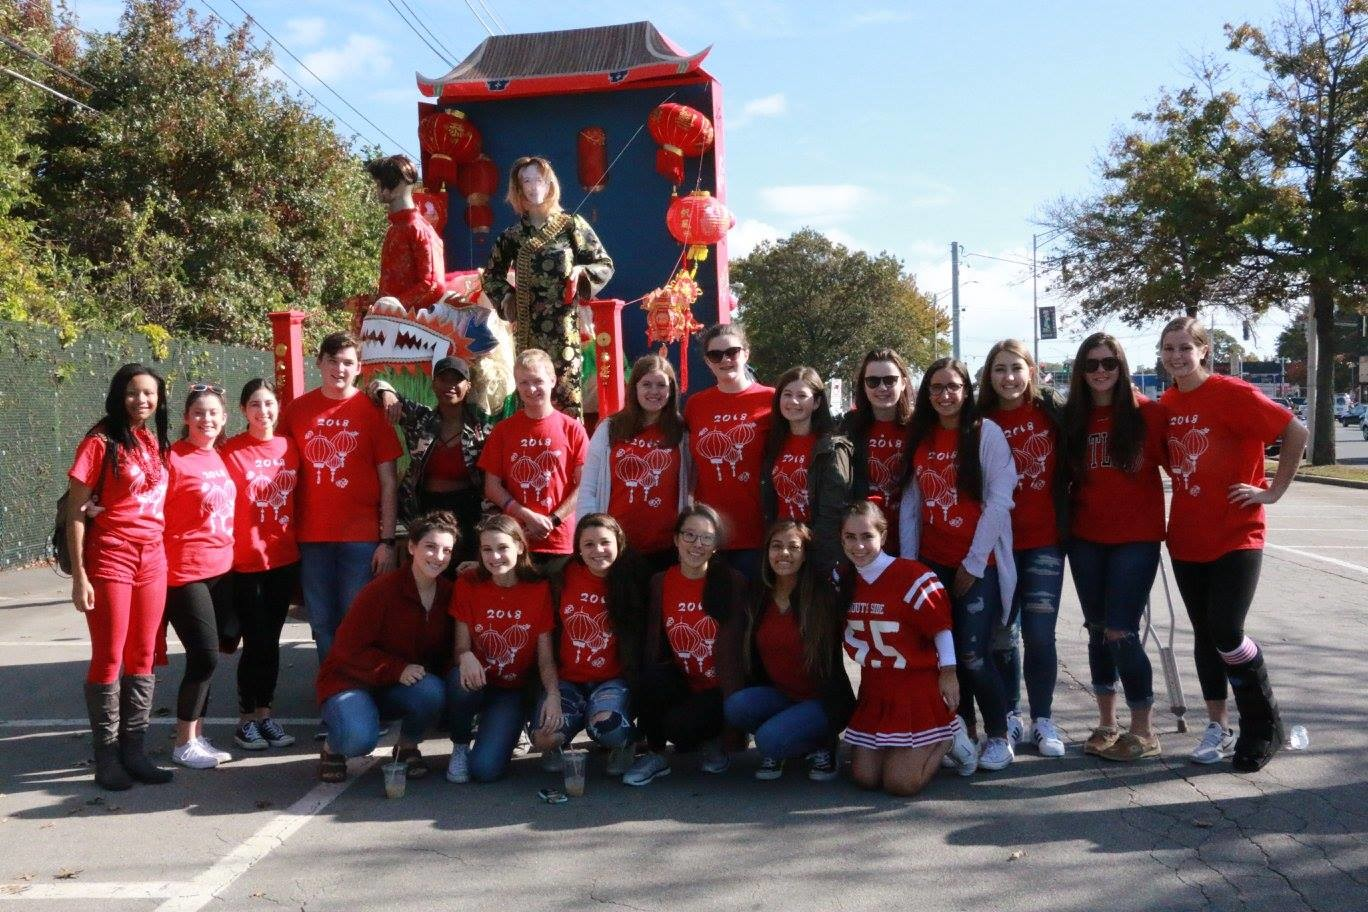 The senior class with their winning Chinese New Year float, featuring mannequins sporting traditional Chinese garb, lanterns, and a dragon.